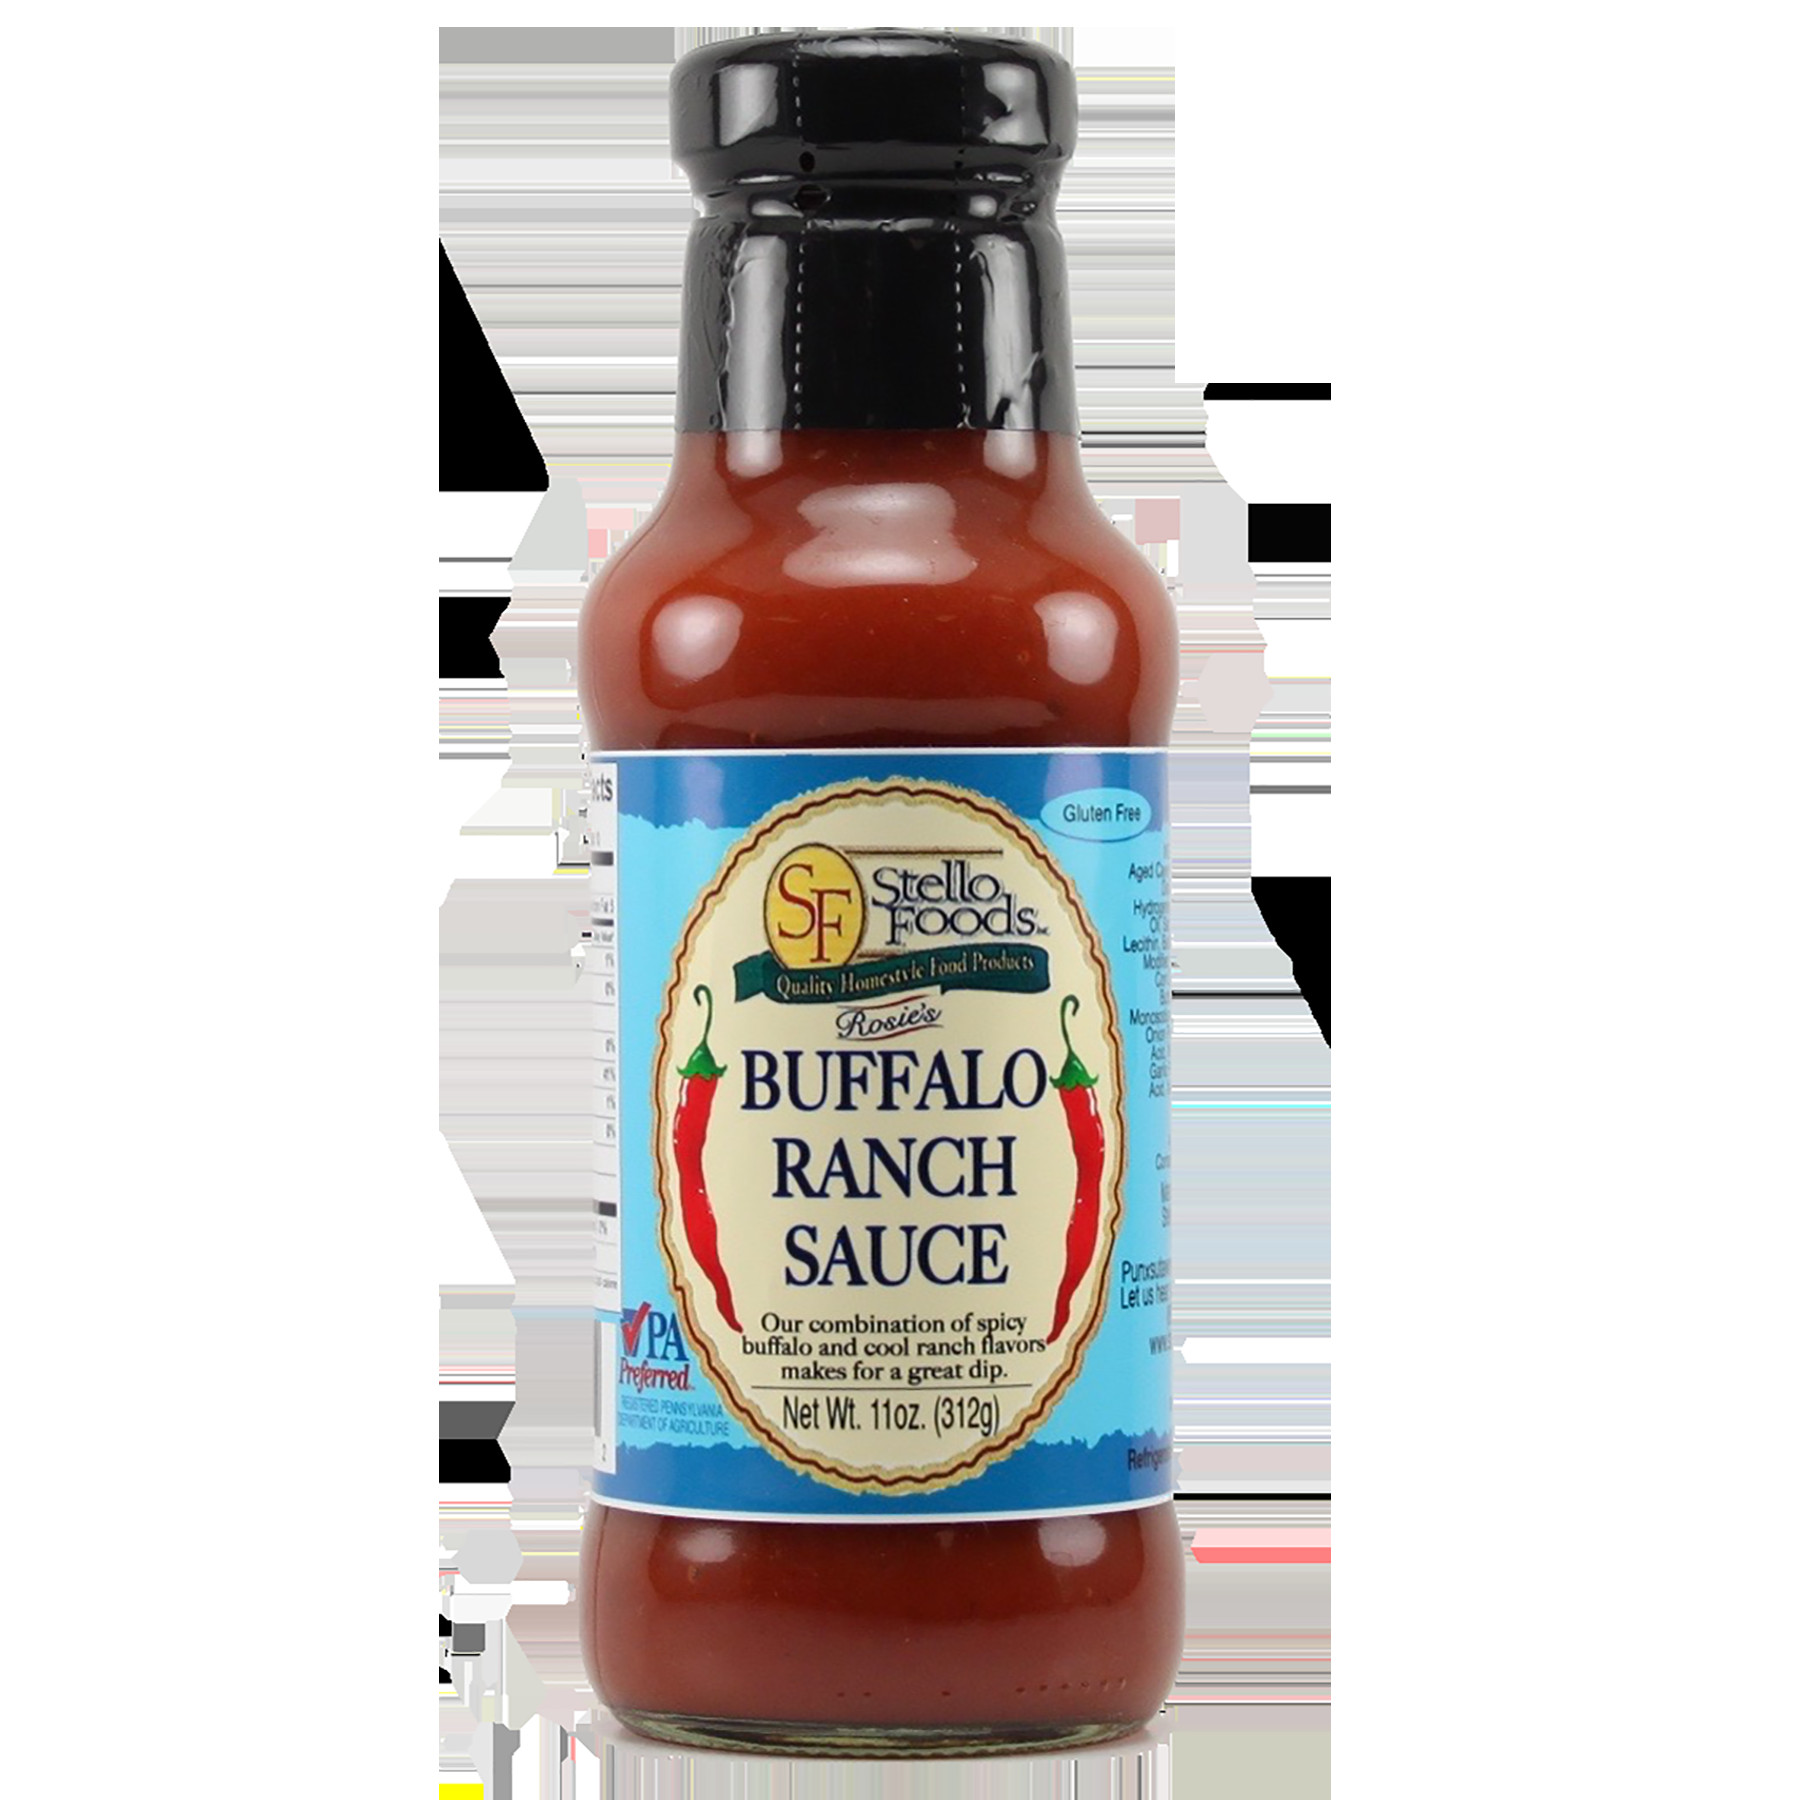 Buffalo Wild Wings Sauces For Sale  Rosie s Buffalo Ranch Wing Sauce 11oz